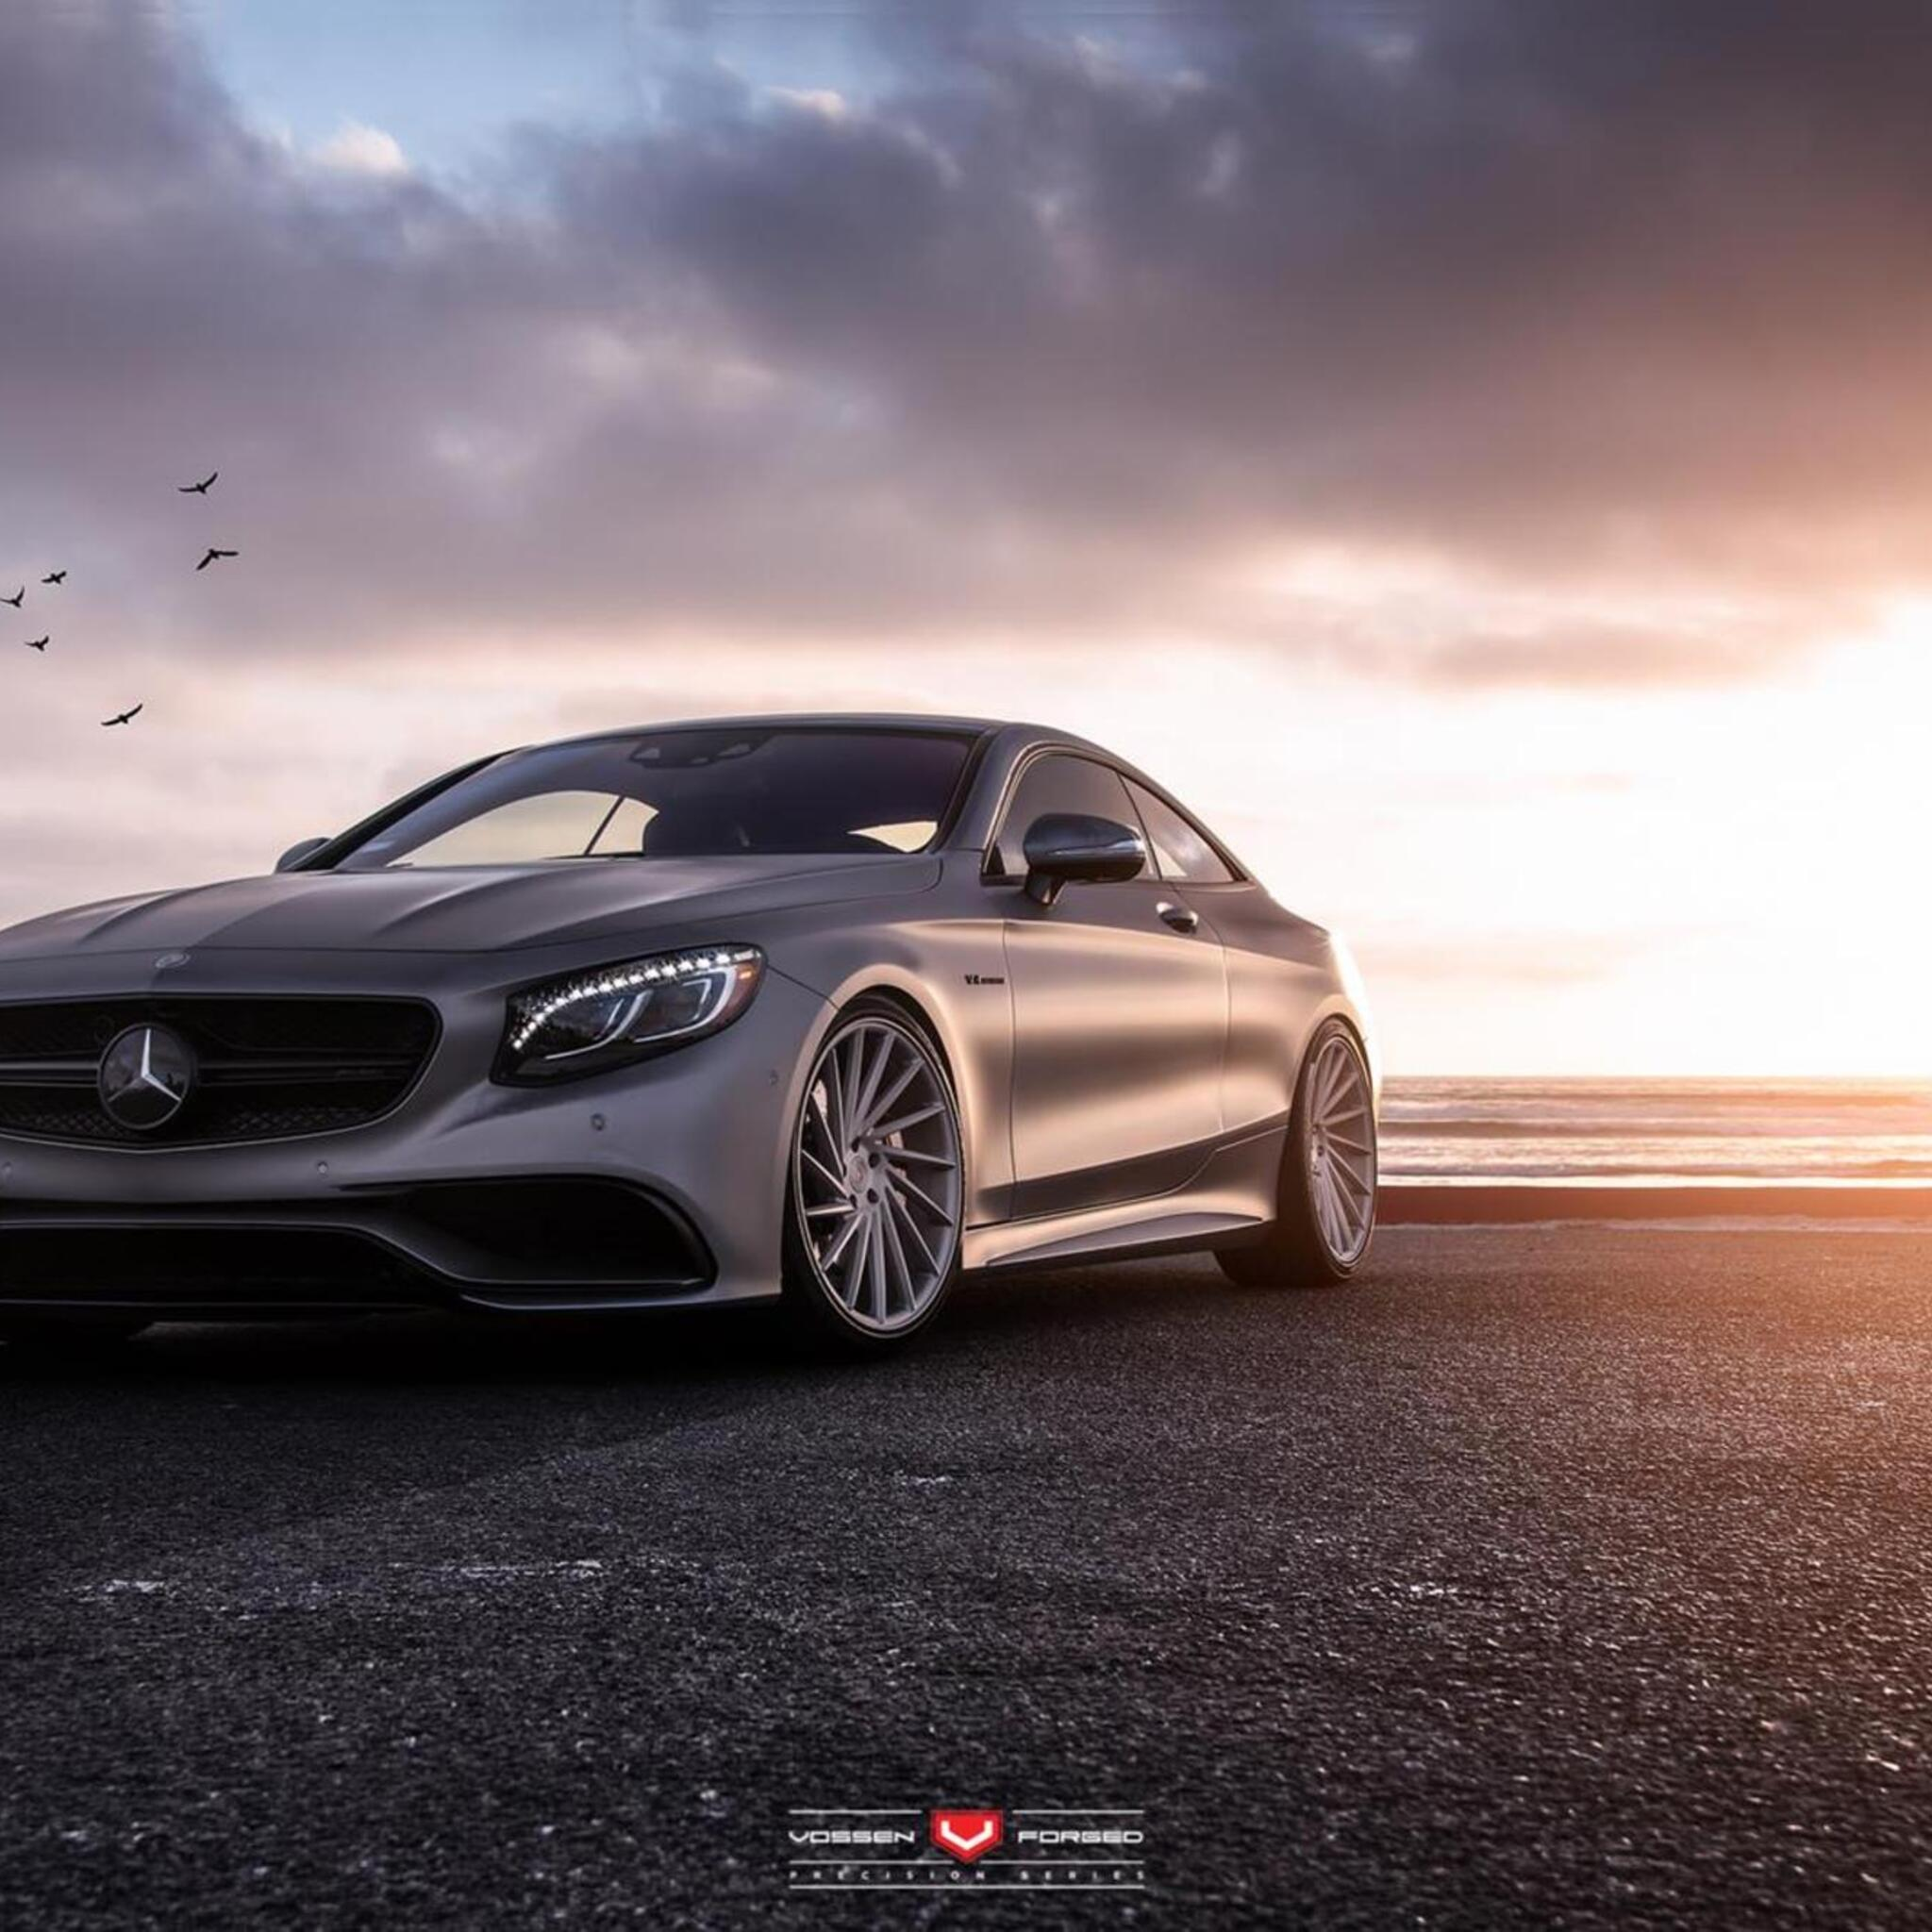 2048x2048 Mercedes Benz S Class Coupe Ipad Air HD 4k